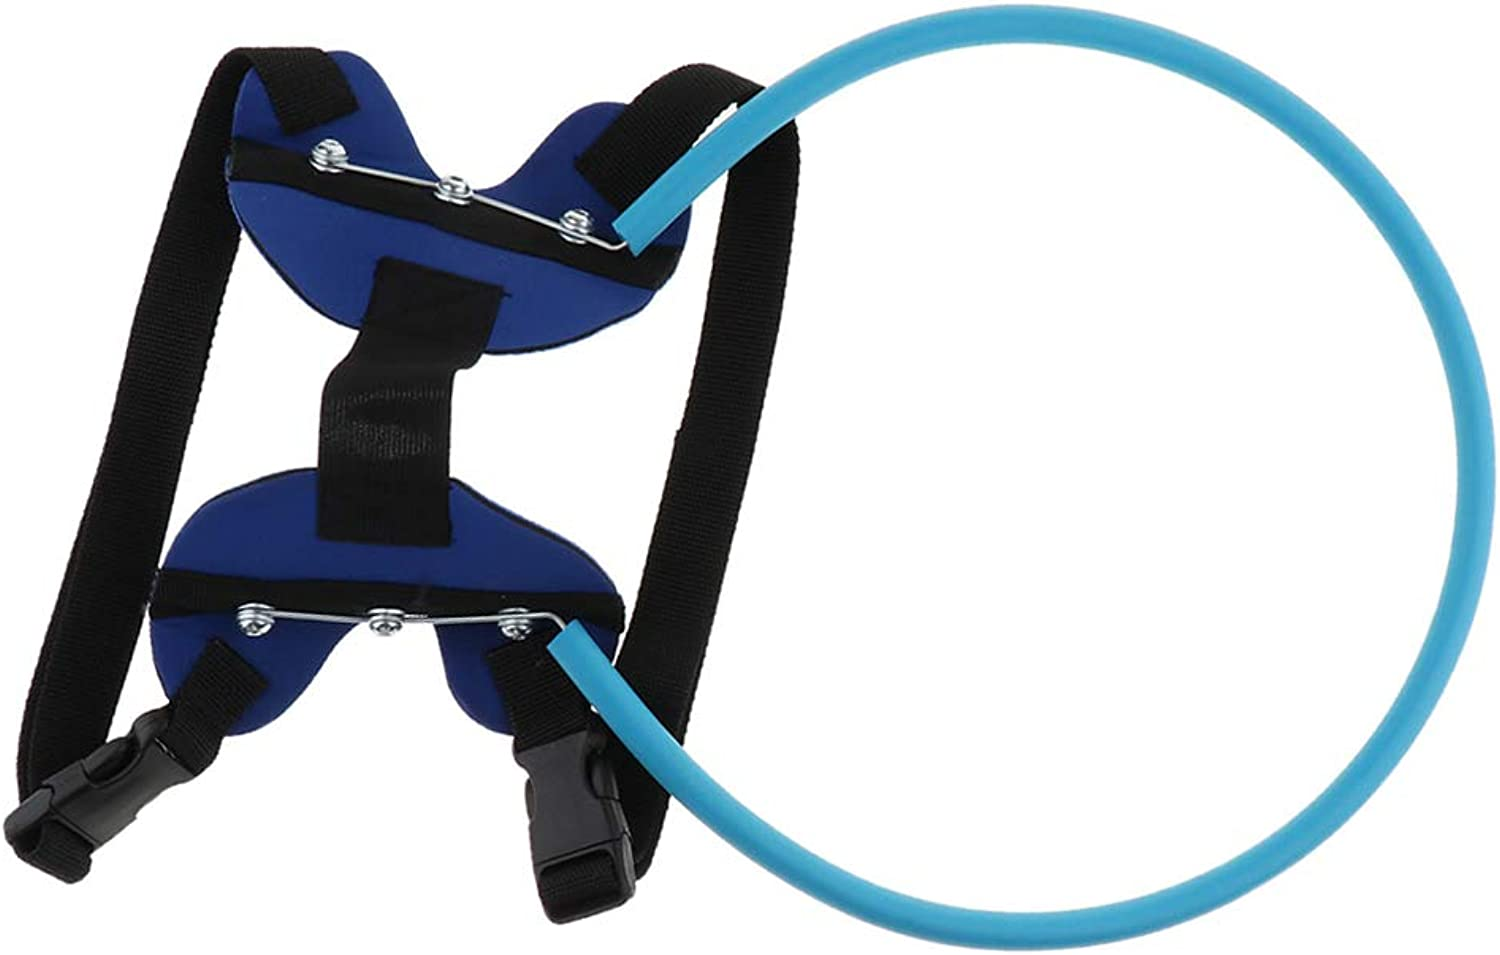 Baoblaze Blind Dogs Outdoor Safety Walking Tool Puppy Plastic Circle Ring Outfit  M